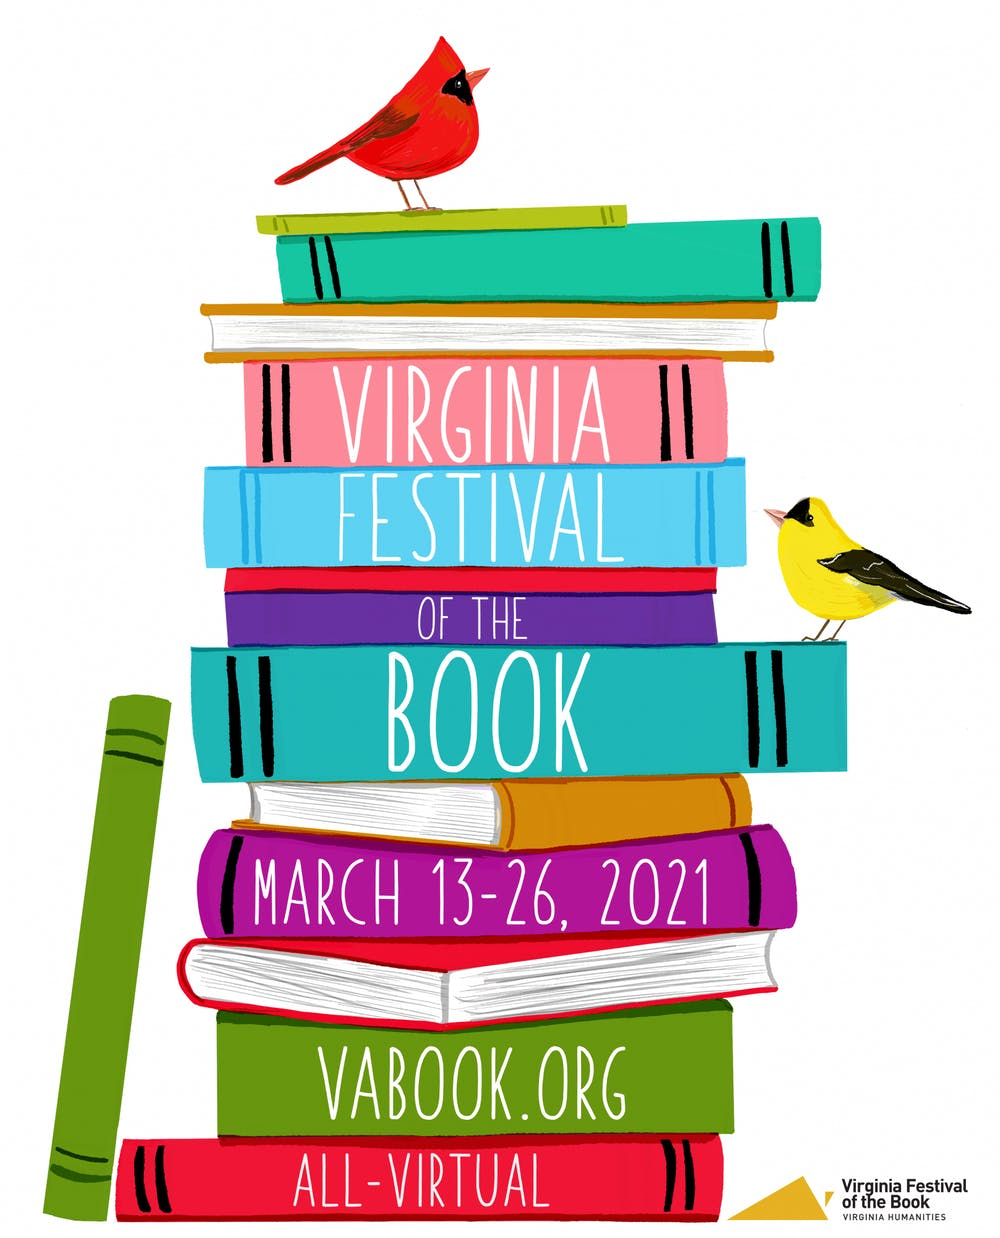 <p>The All-Virtual Virginia Festival of the Book offers a wide variety of conversations with authors from March 13 to March 26.</p>